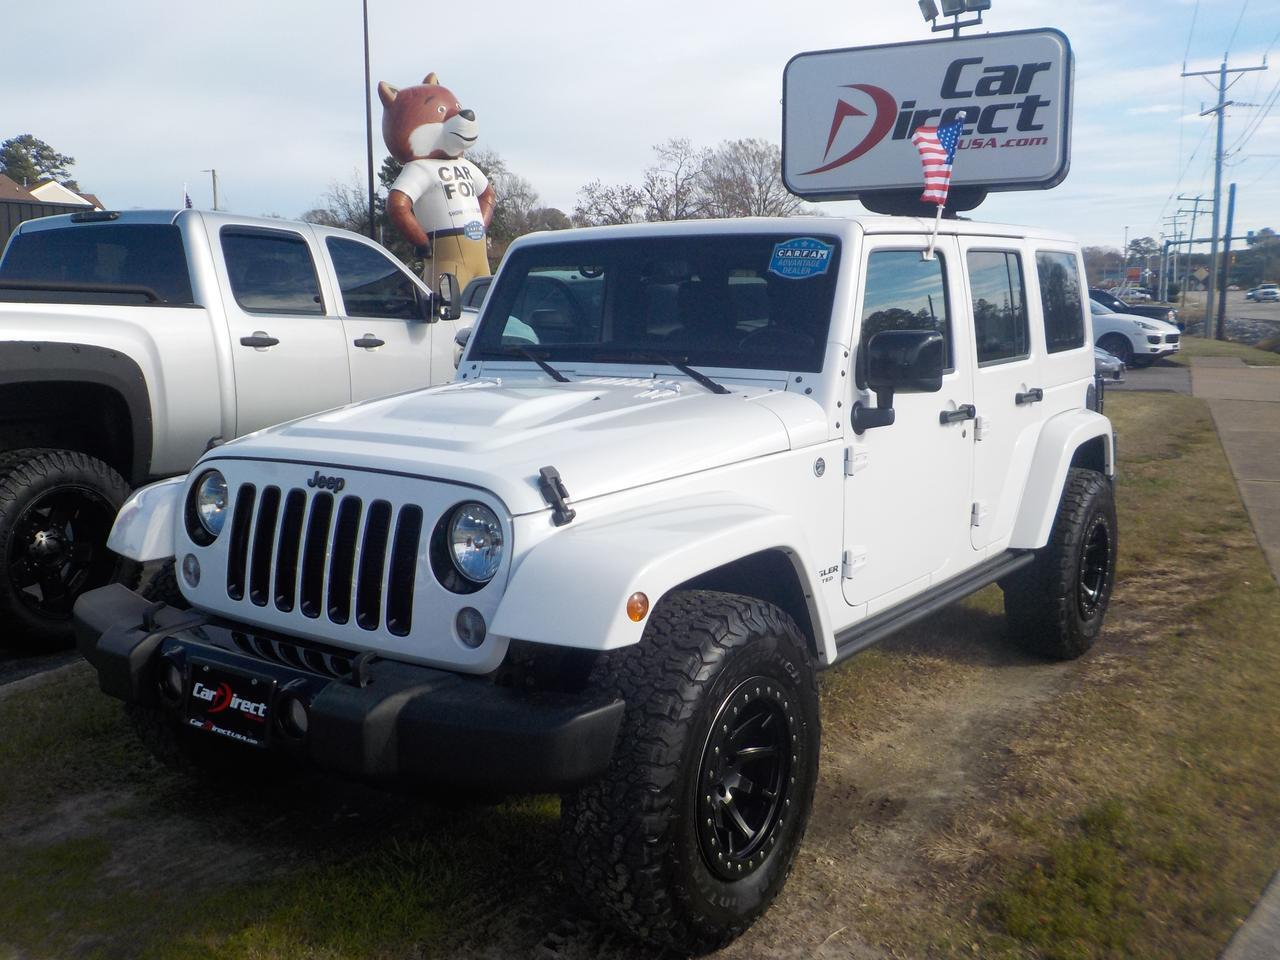 2015 JEEP WRANGLER UNLIMITED SAHARA 4X4, LEATHER, NAVI, DVD, HEATED SEATS, TOW PACKAGE, REMOTE START, ONLY 61K MILES! Virginia Beach VA